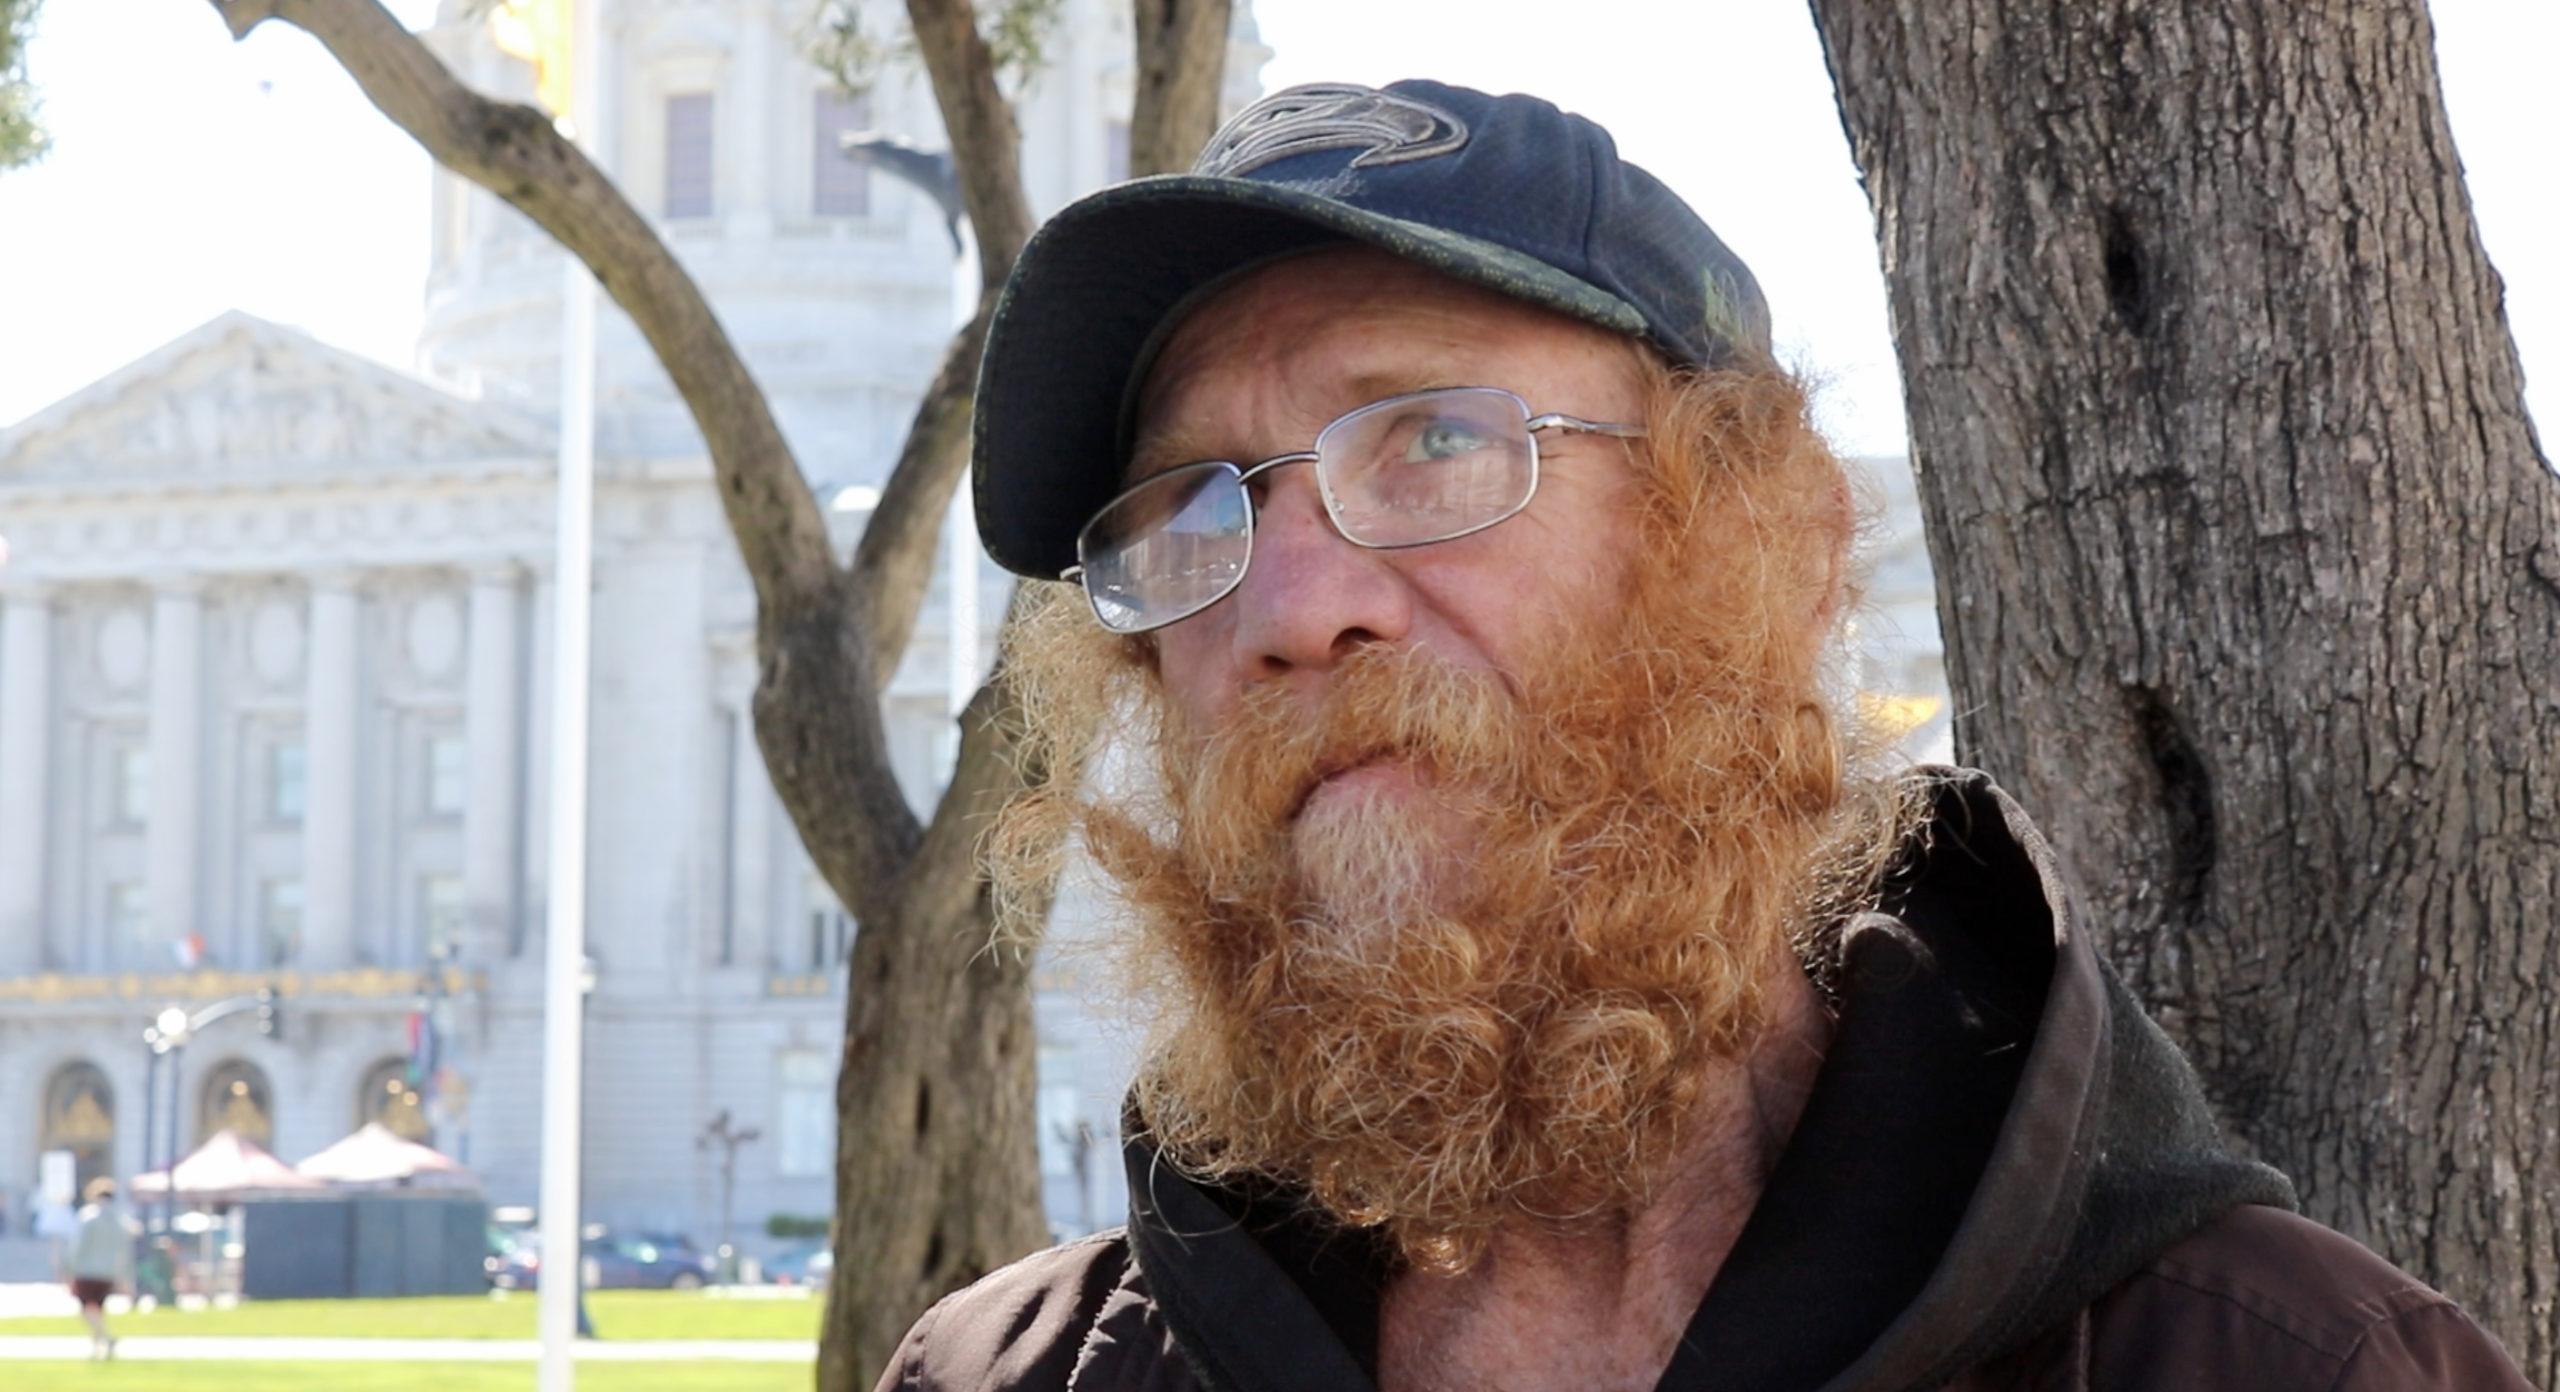 Charles Davis with a baseball cap, glasses, and a bushy red beard.